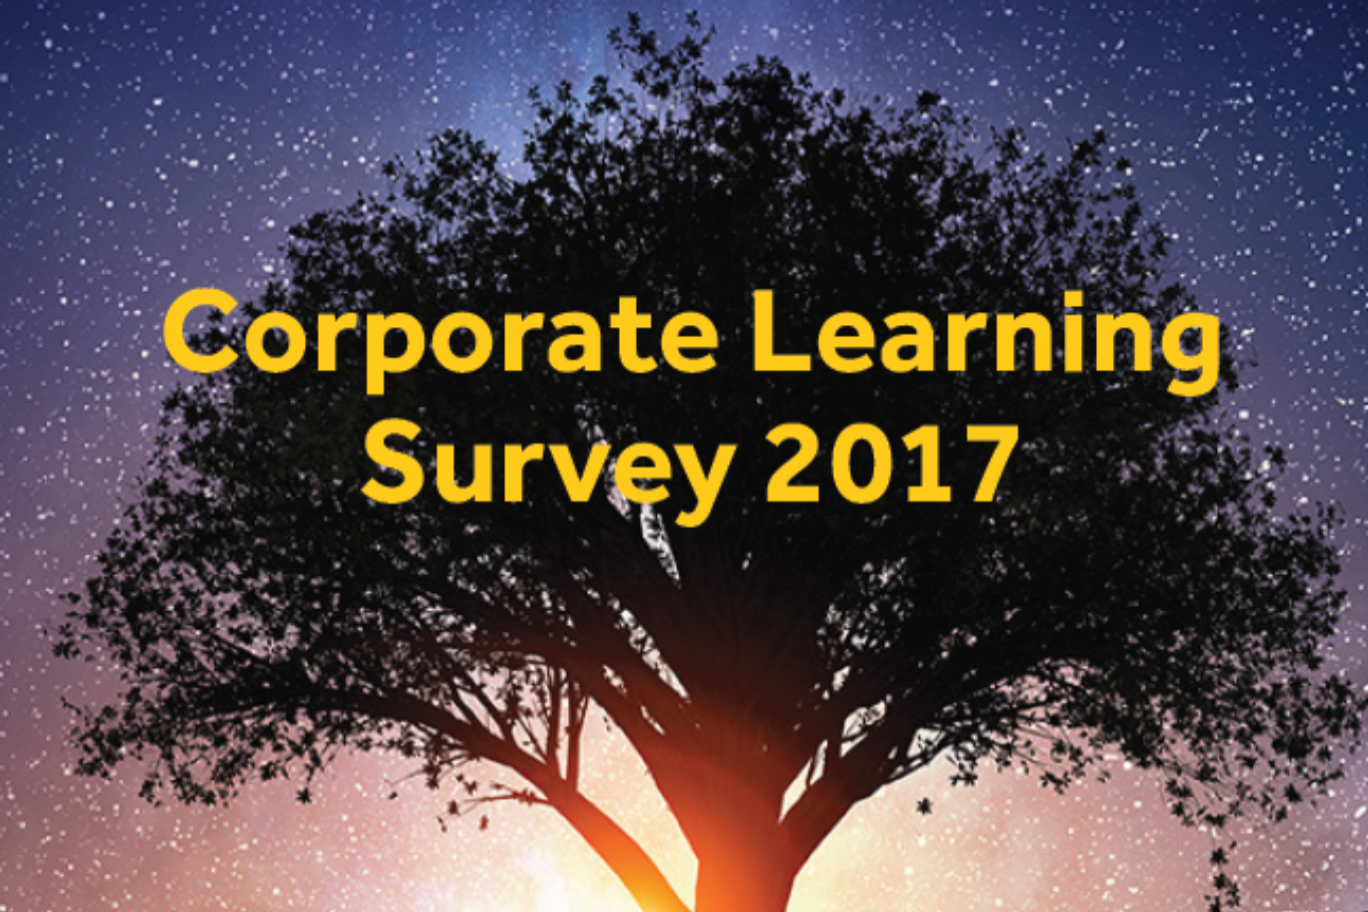 Corporate learning: All hands on deck to tackle uncertainty